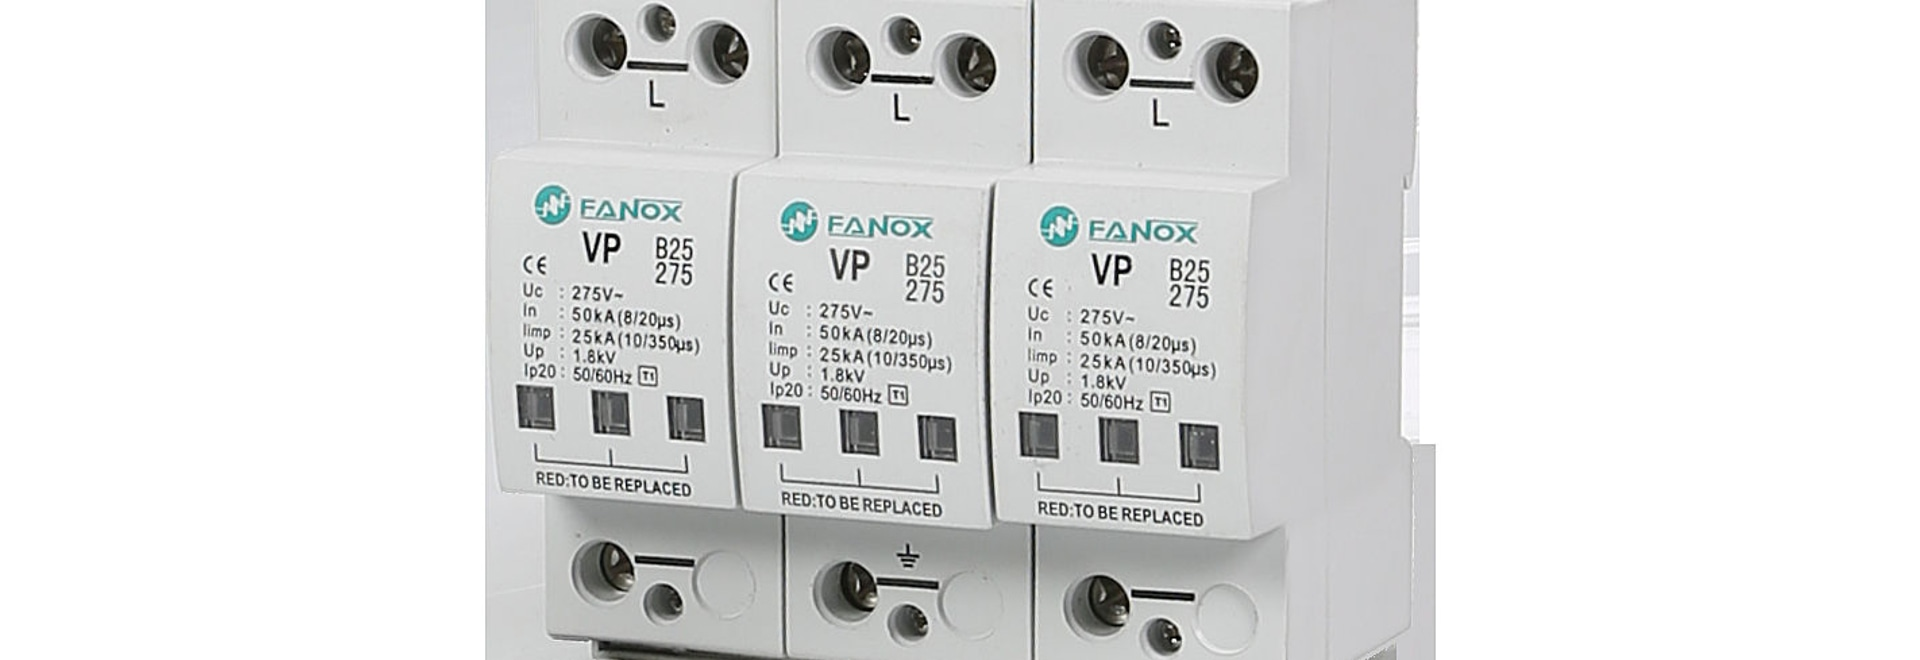 Surge Protection Relays FANOX ELECTRONIC - Protection relays and circuit breakers